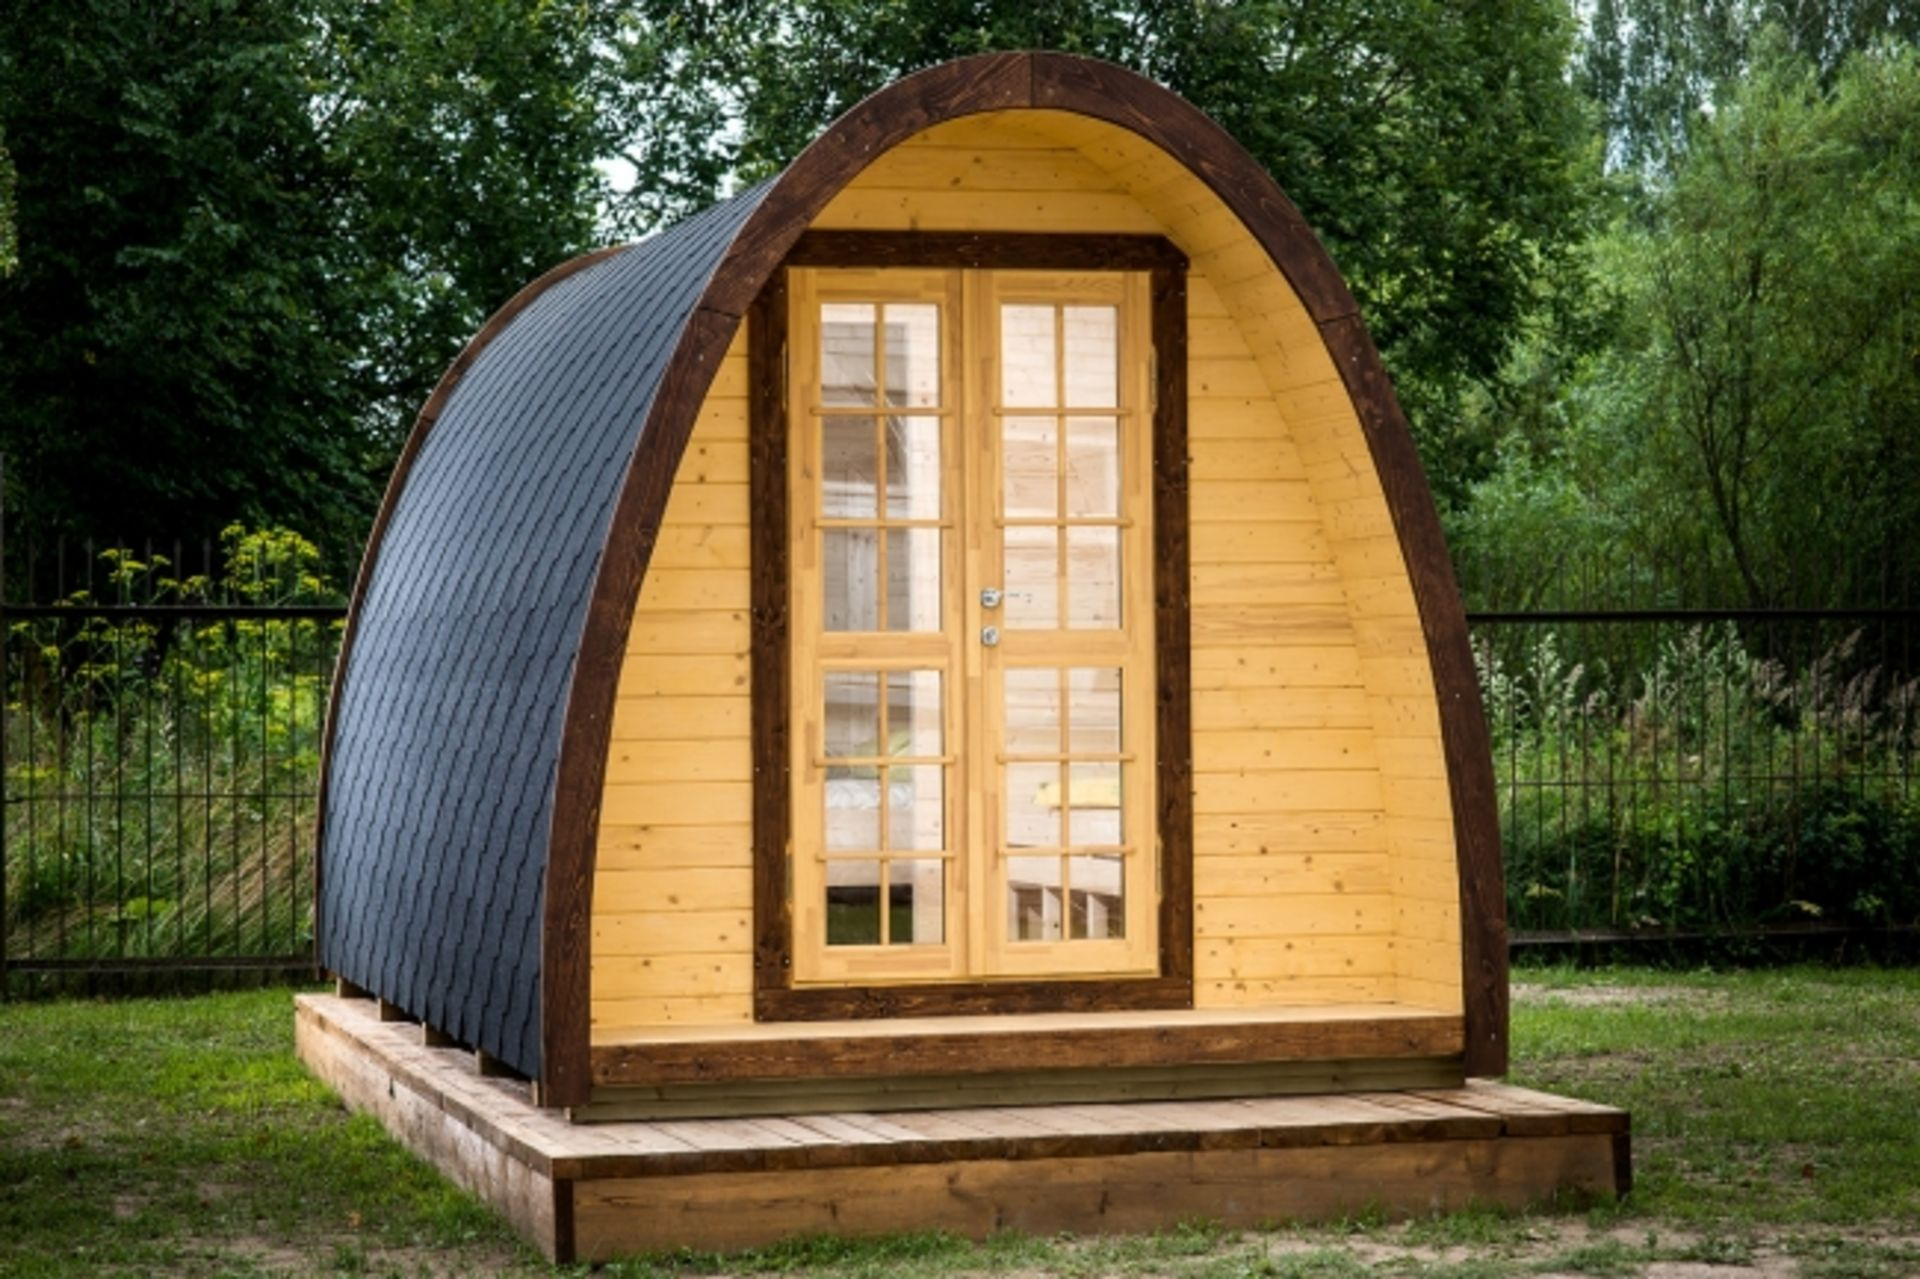 Lot 18058 - V Brand New 9.3m sq (2.4m x 4.8m) Spruce Camping Pod - Holds 2-4 People - Opening Window In The Back